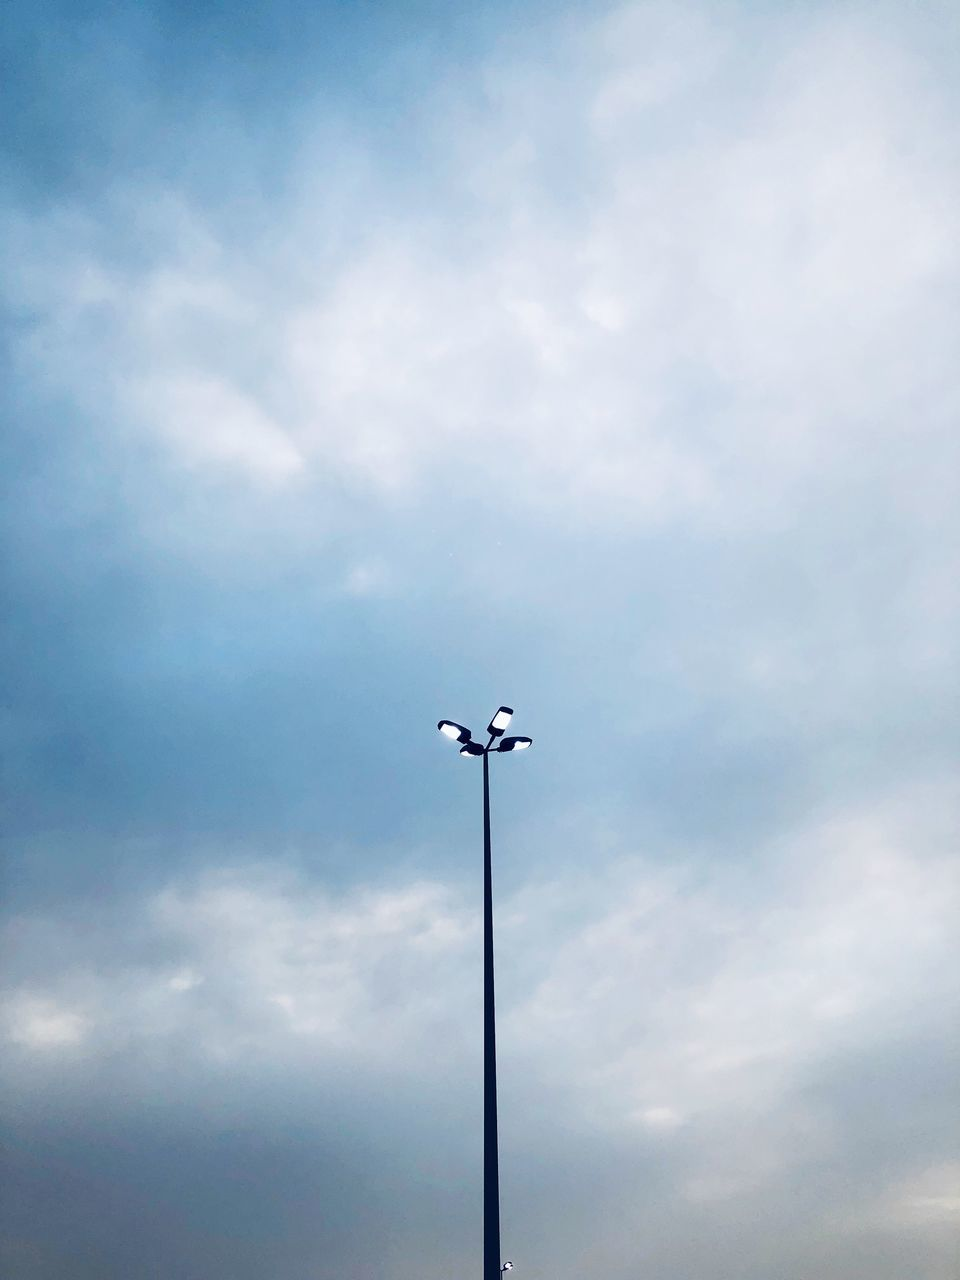 cloud - sky, sky, low angle view, lighting equipment, street, street light, no people, nature, day, floodlight, outdoors, animal themes, pole, animal, technology, bird, tall - high, vertebrate, animals in the wild, light, electricity, electric lamp